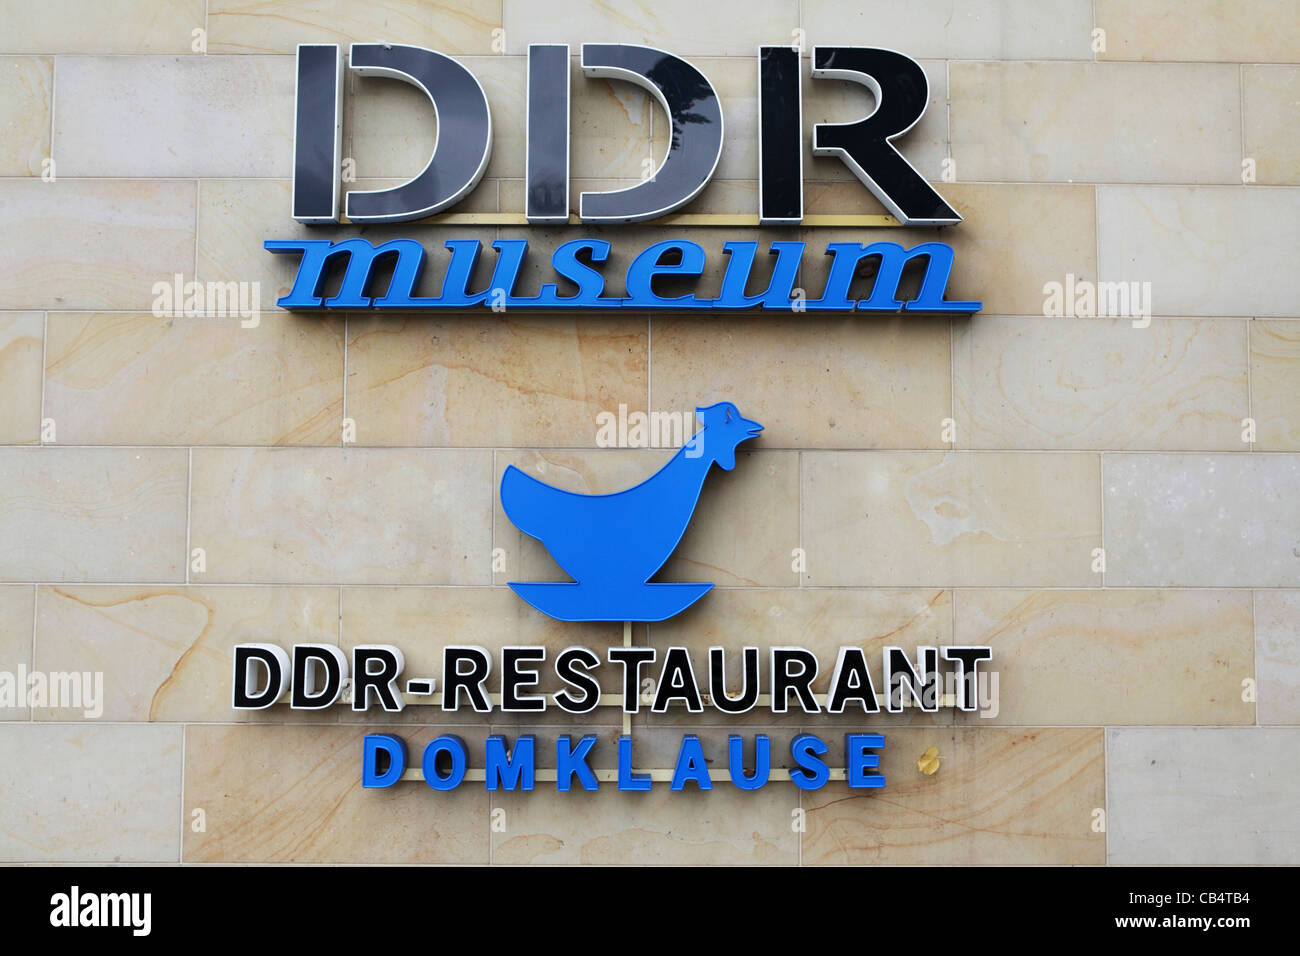 Sign for the DDR Museum and DDR Restaurant in Berlin, Germany. - Stock Image